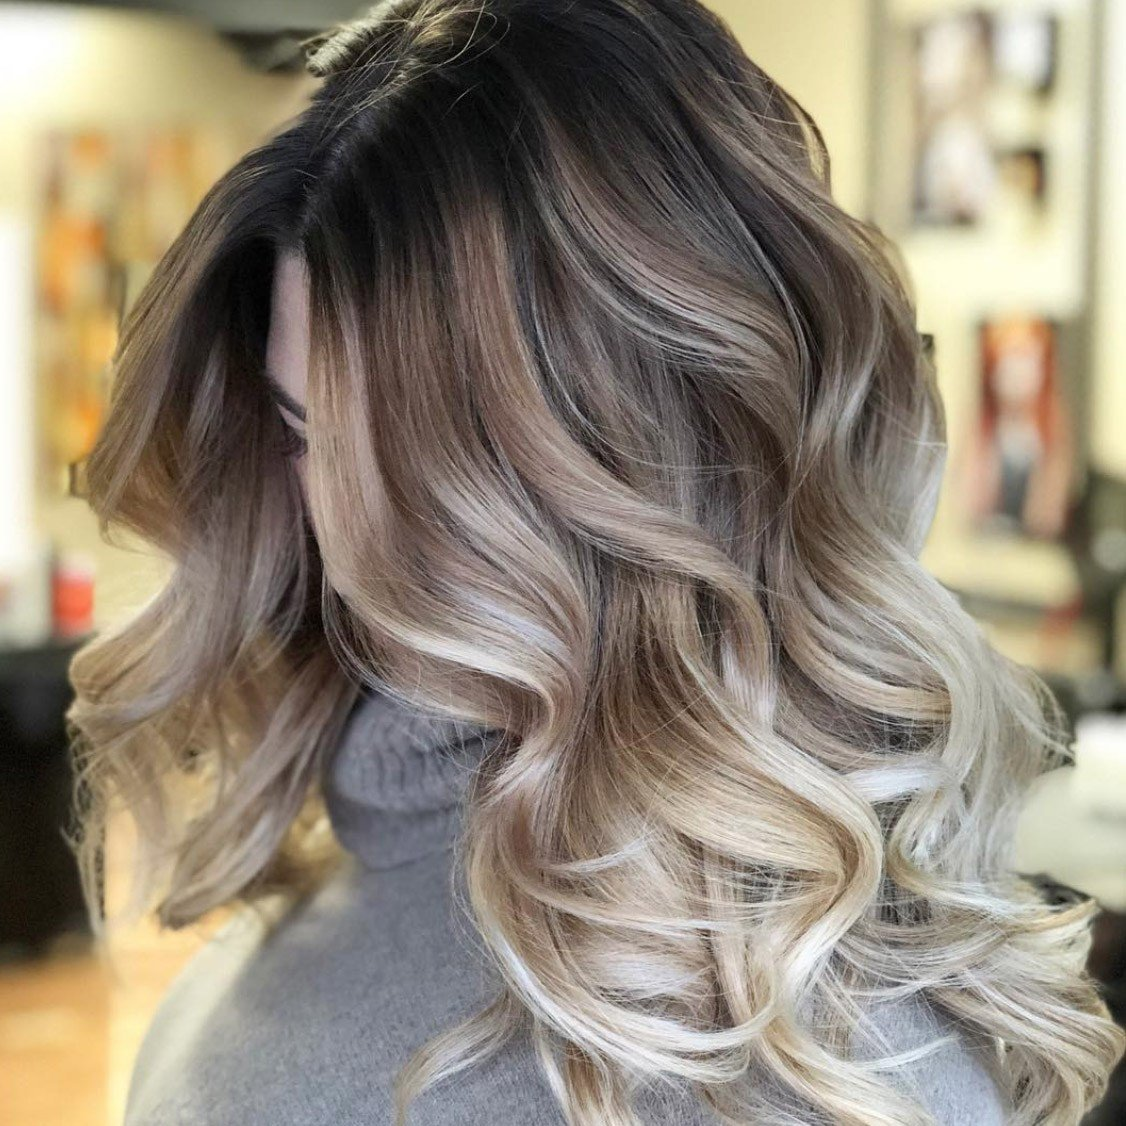 The Best Toning For Balayage Highlights—What You And Your Pictures